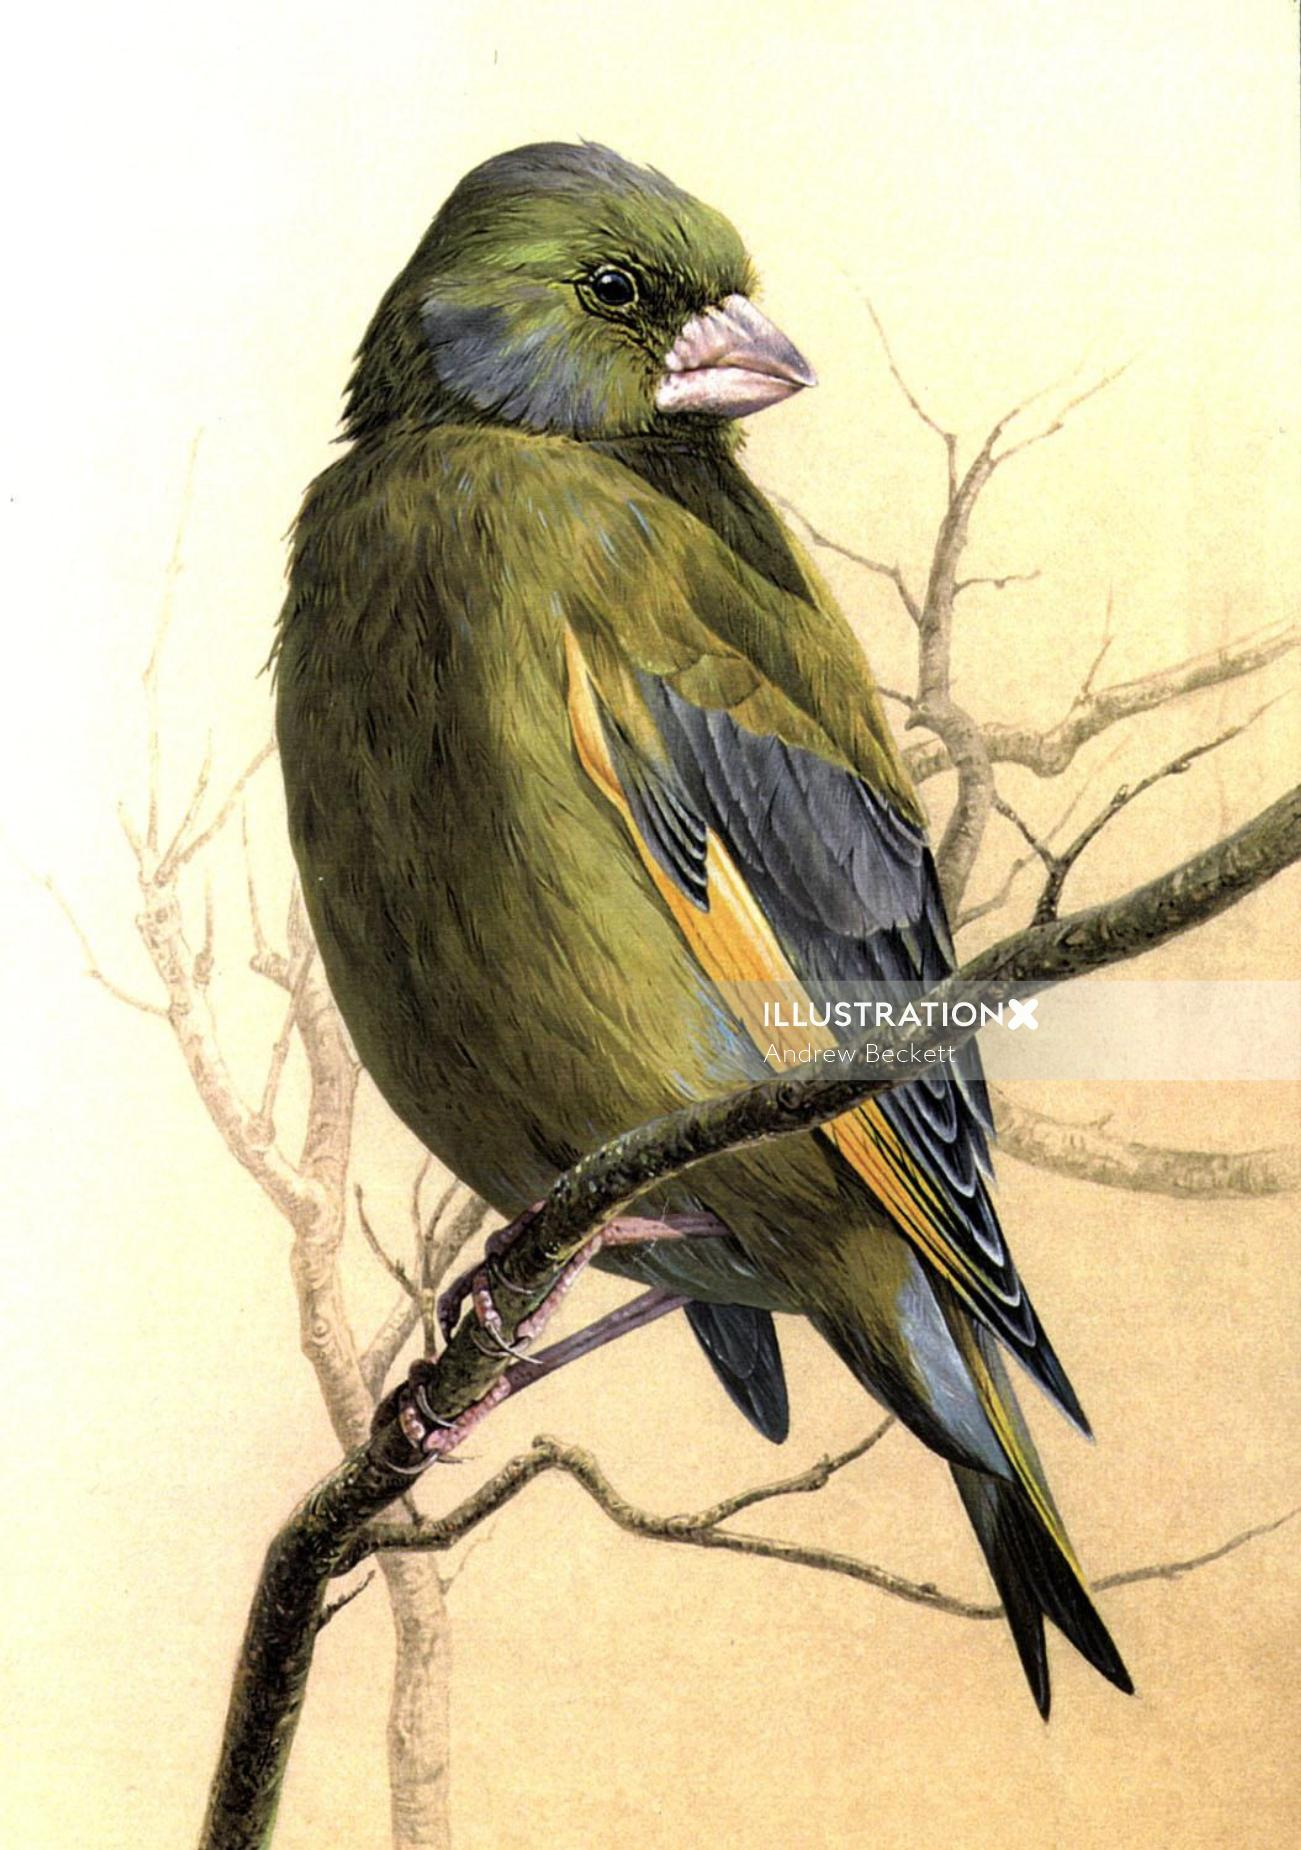 Graphic bird illustration by Andrew Becket